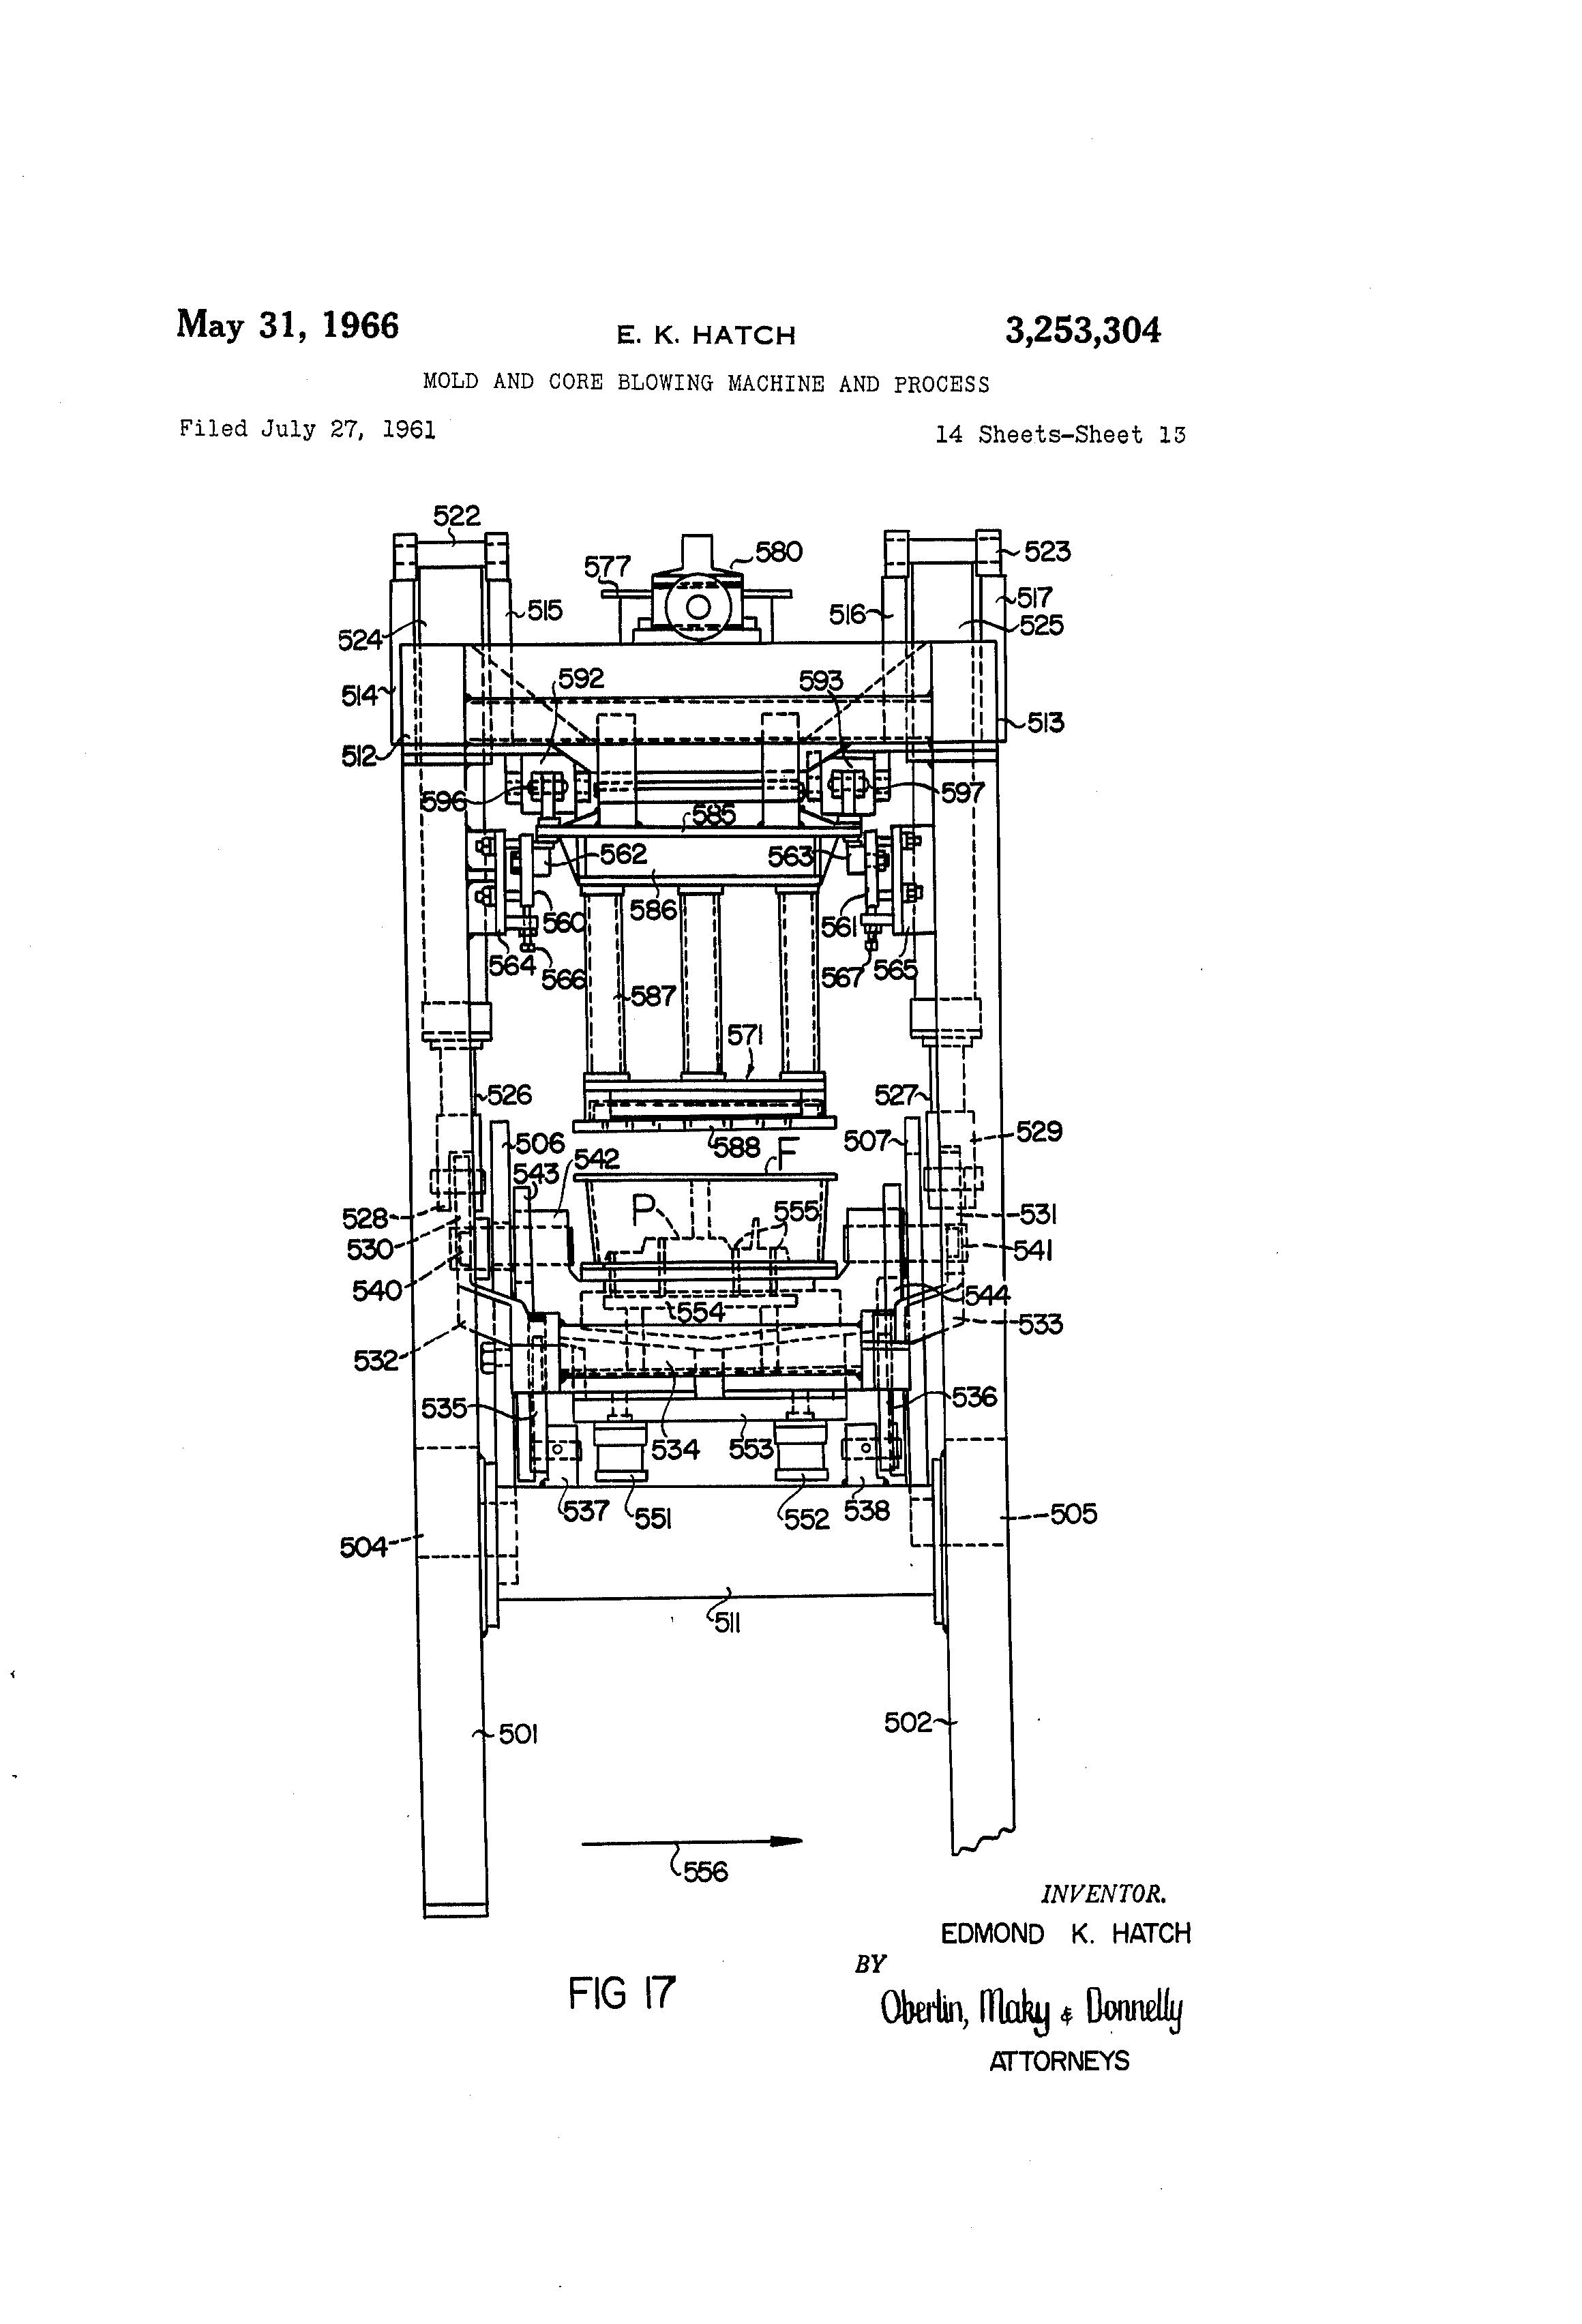 US3253304 12 patent us3253304 mold and core blowing machine and process  at mifinder.co